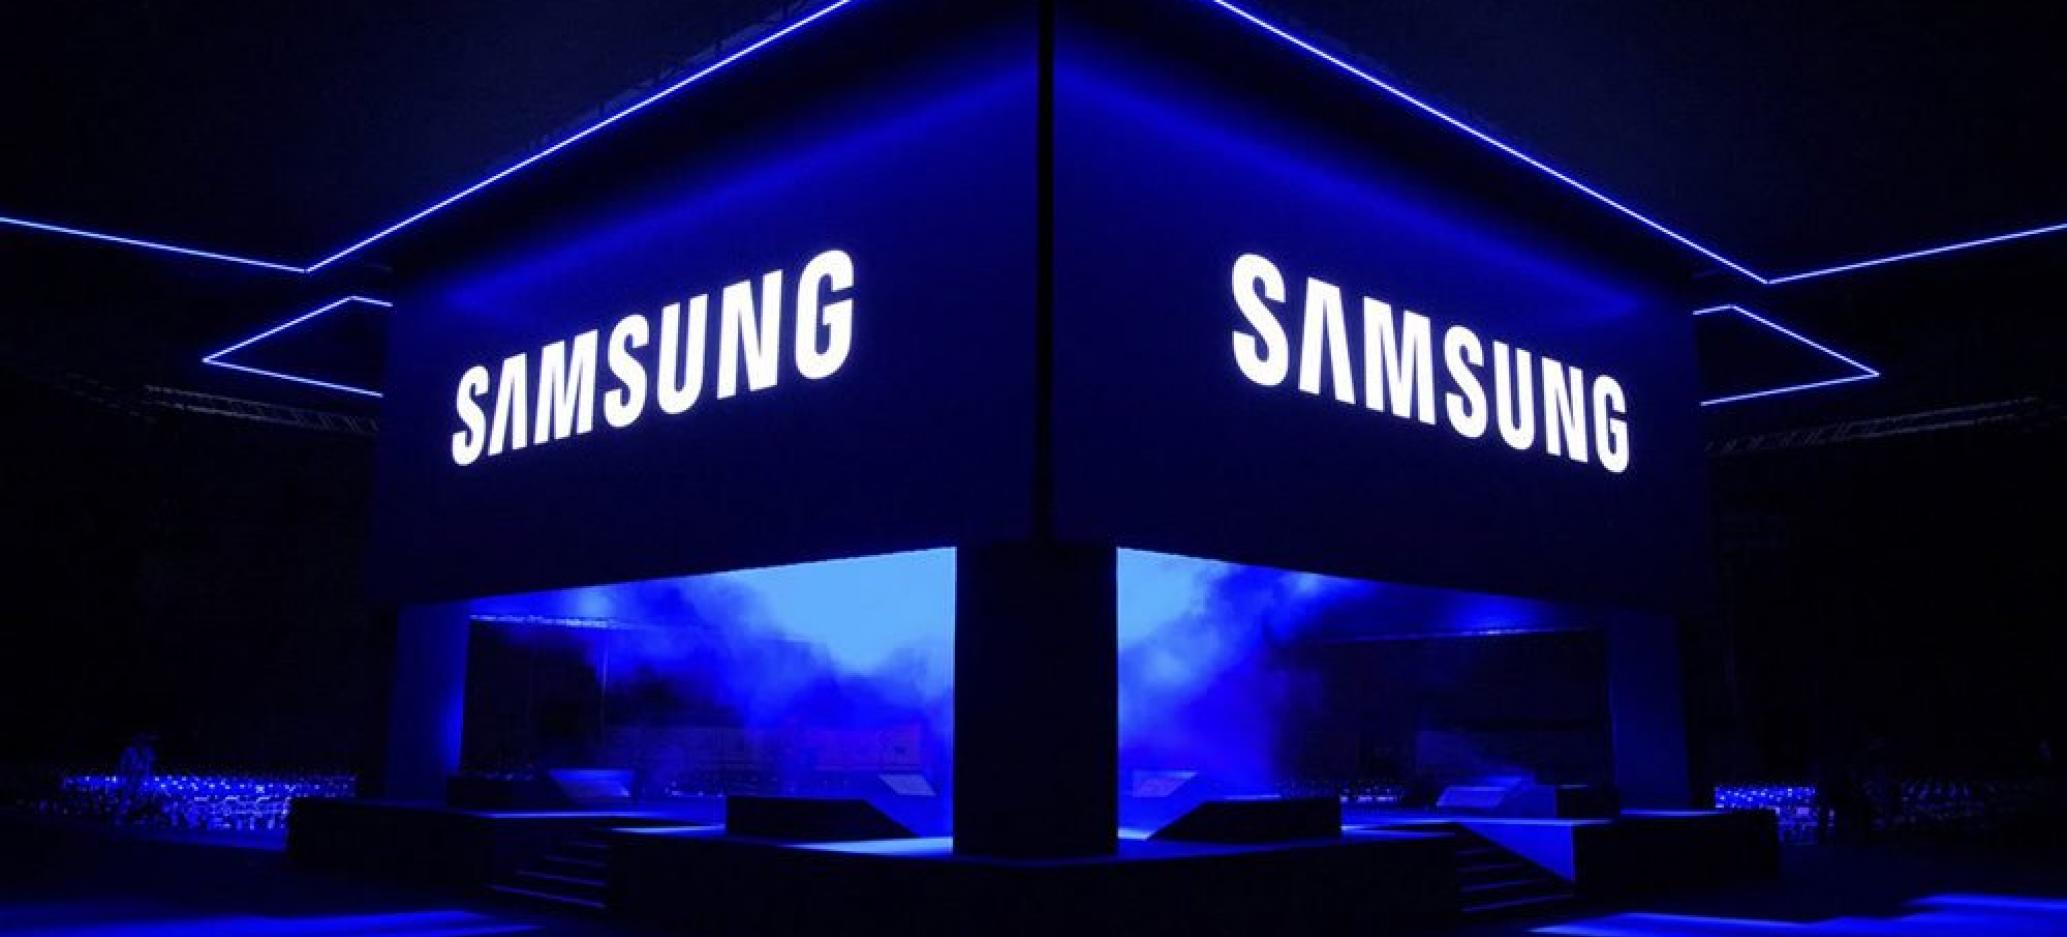 Samsung Expects Record Profits but Misses Analyst Expectations